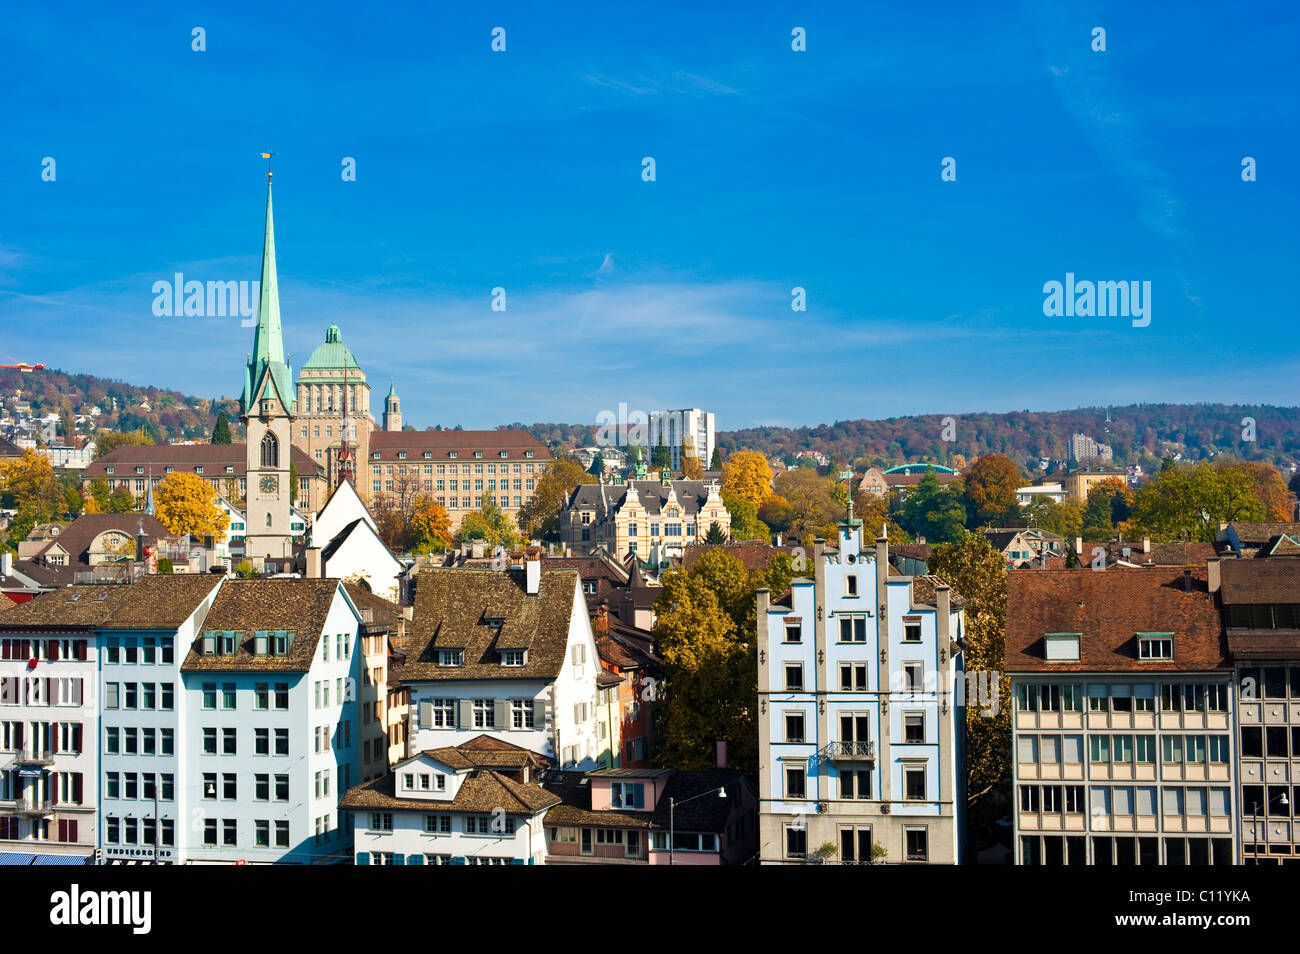 Limmat River, historic town, Predigerkirche church, Zurich, Switzerland, Europe - Stock Image